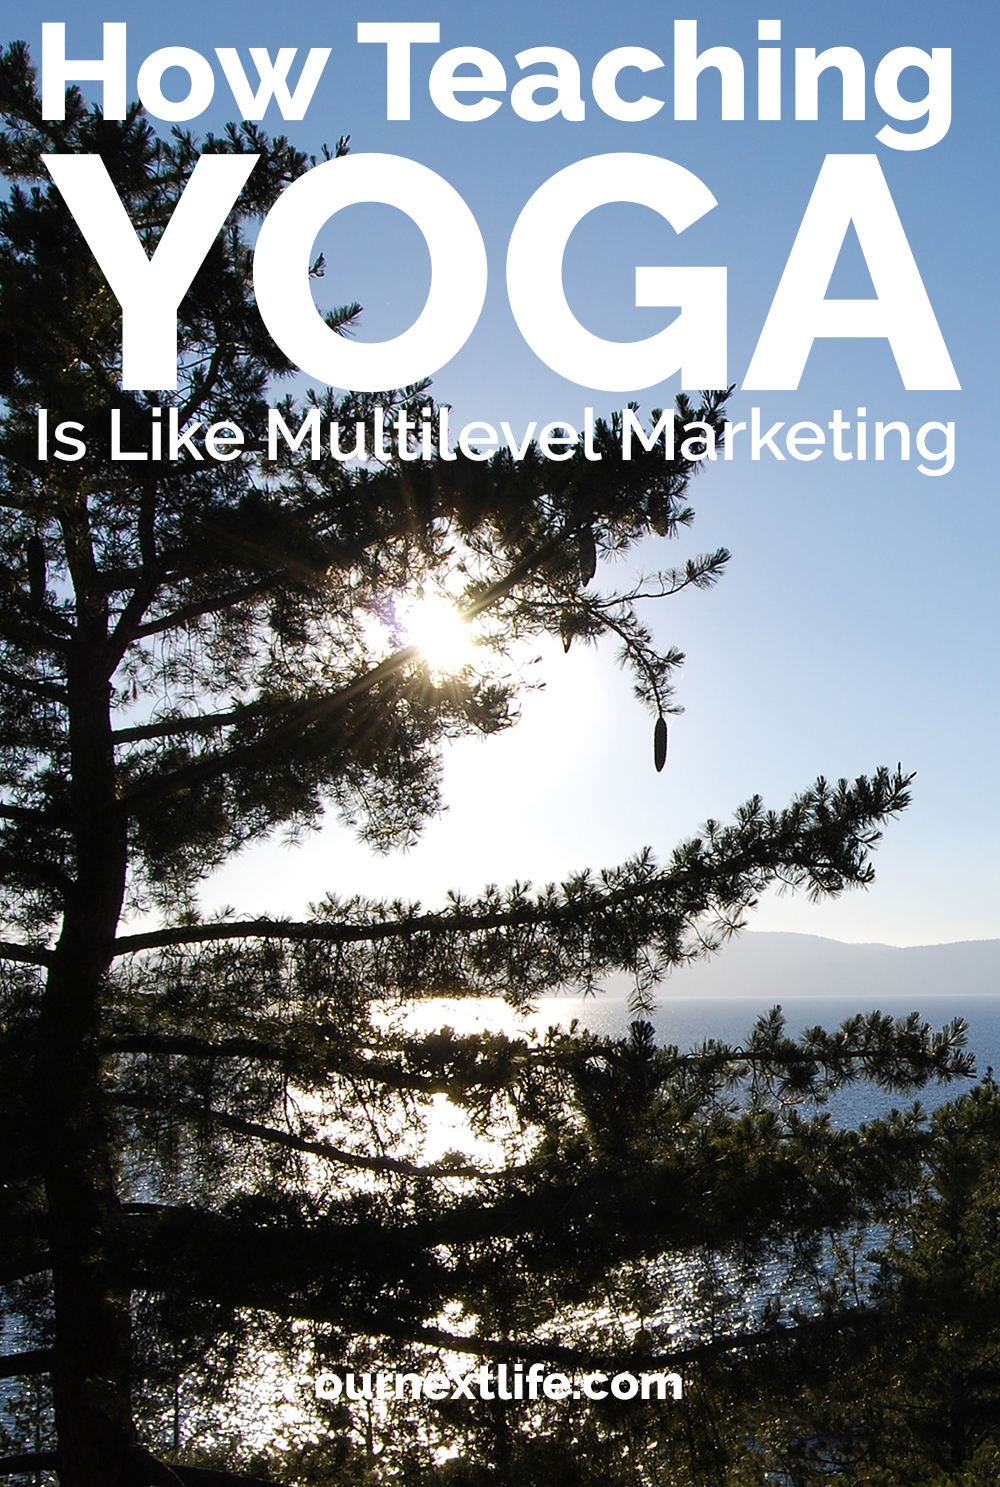 How teaching yoga is like multilevel marketing // My longest, least lucrative side hustle // Yoga teachers, teach yoga, side hustle, fitness instruction